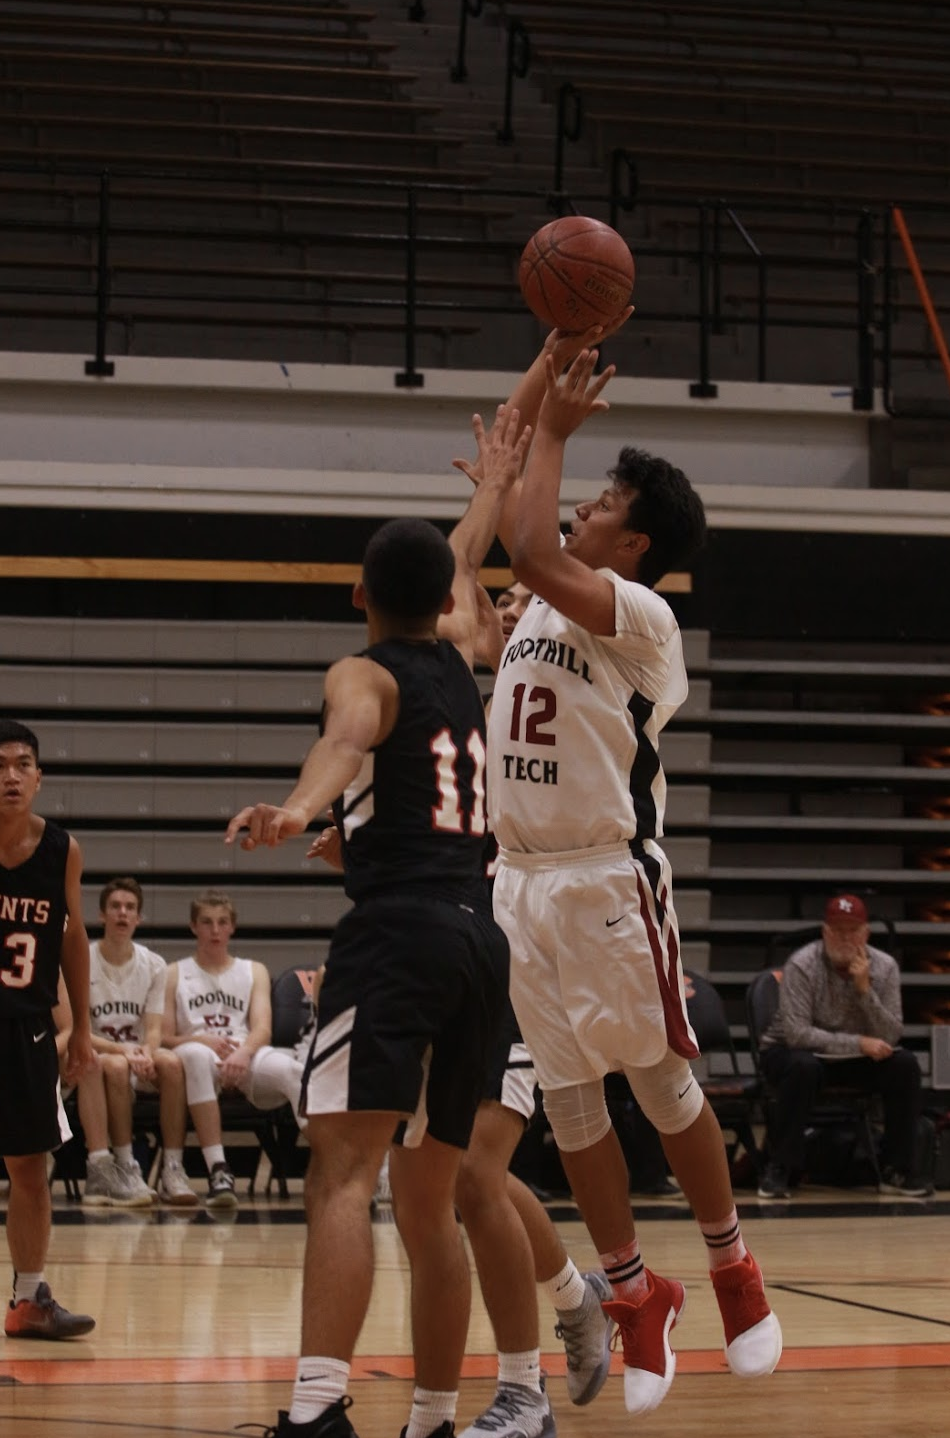 Ty Macias '20 puts up a floater from inside the key. Credit: Jason Messner / The Foothill Dragon Press